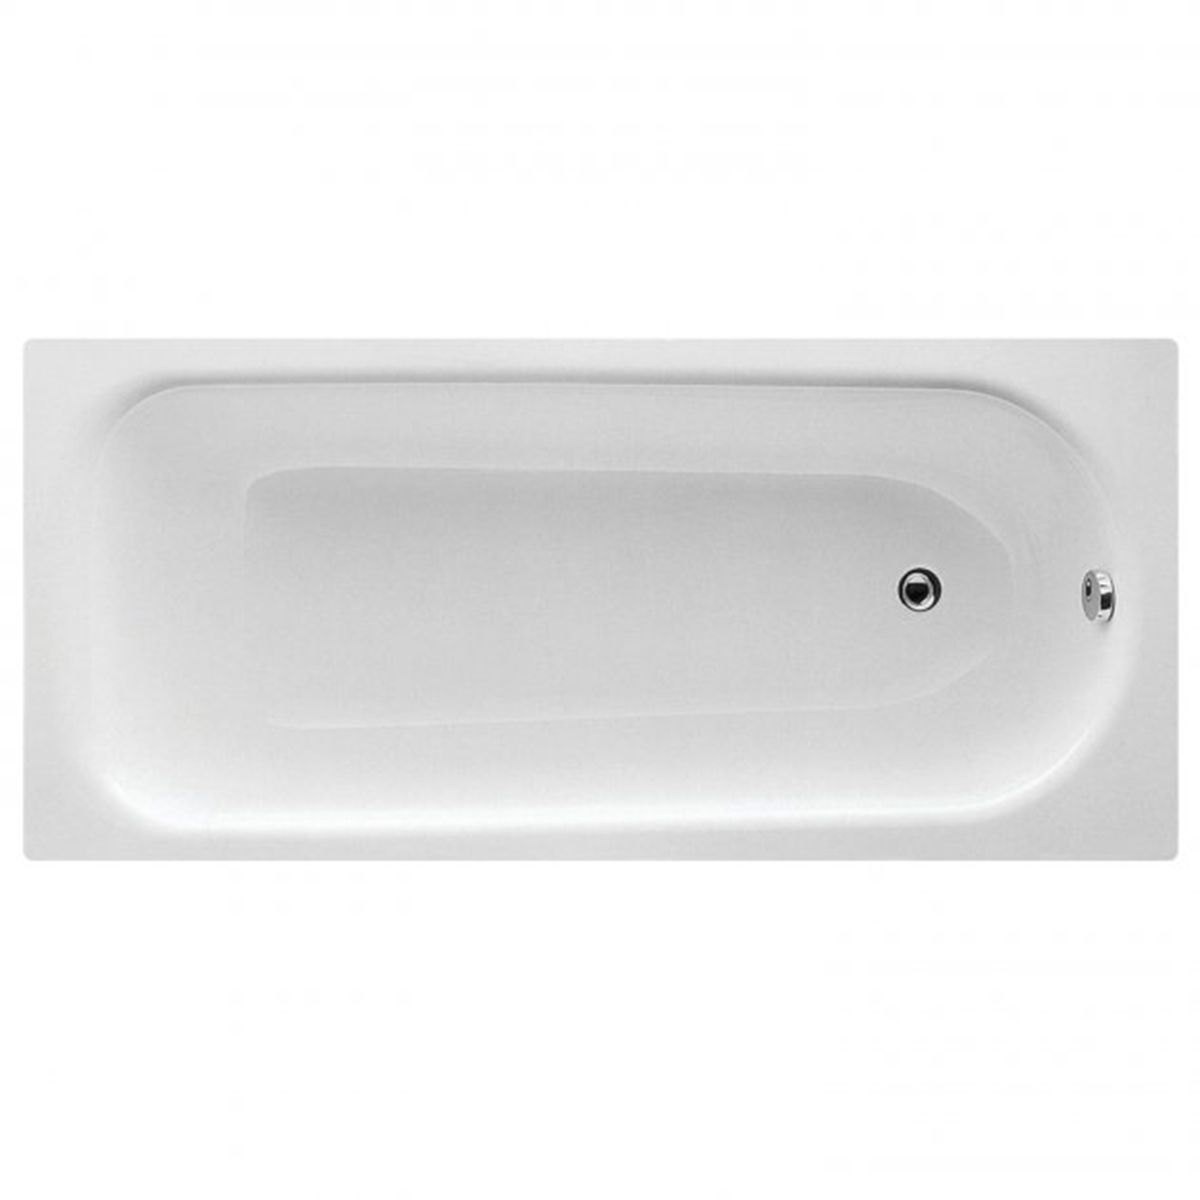 Bathrooms To Love Rectangular 2 Tap Hole Single Ended Steel Bath 1500mm x 700mm